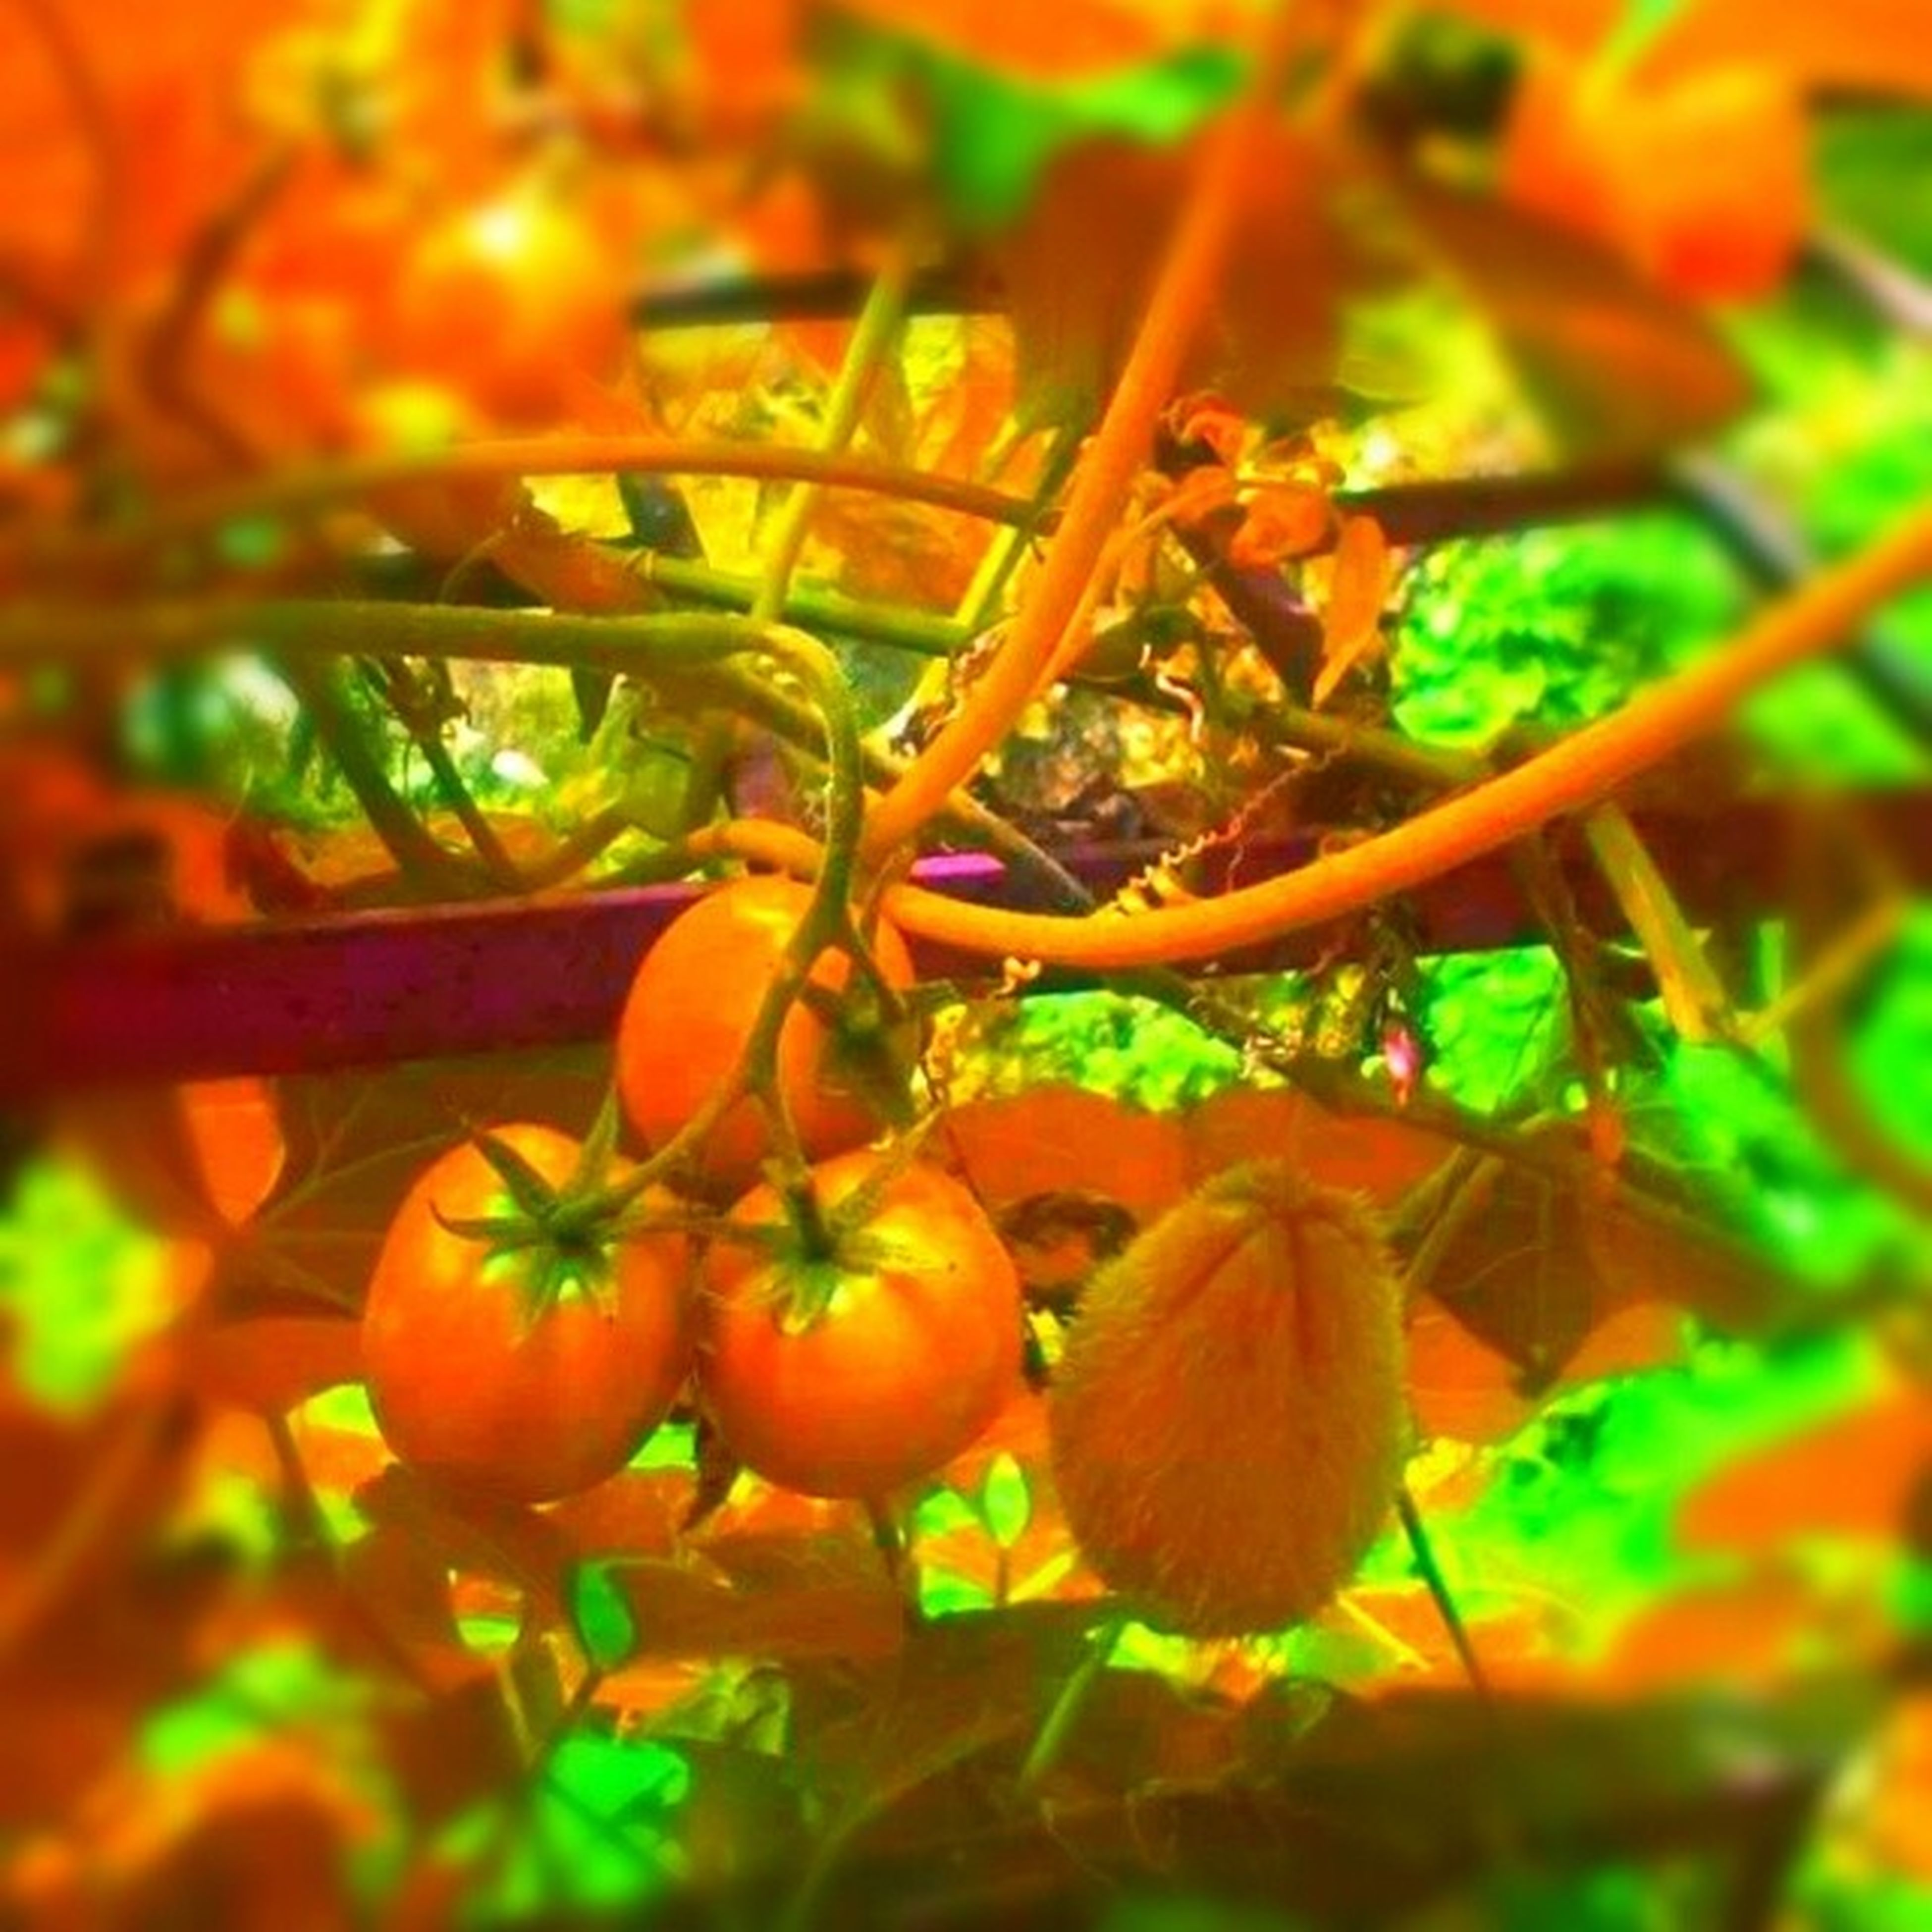 growth, freshness, orange color, close-up, leaf, focus on foreground, nature, plant, selective focus, food and drink, fruit, healthy eating, beauty in nature, stem, food, day, no people, branch, outdoors, fragility